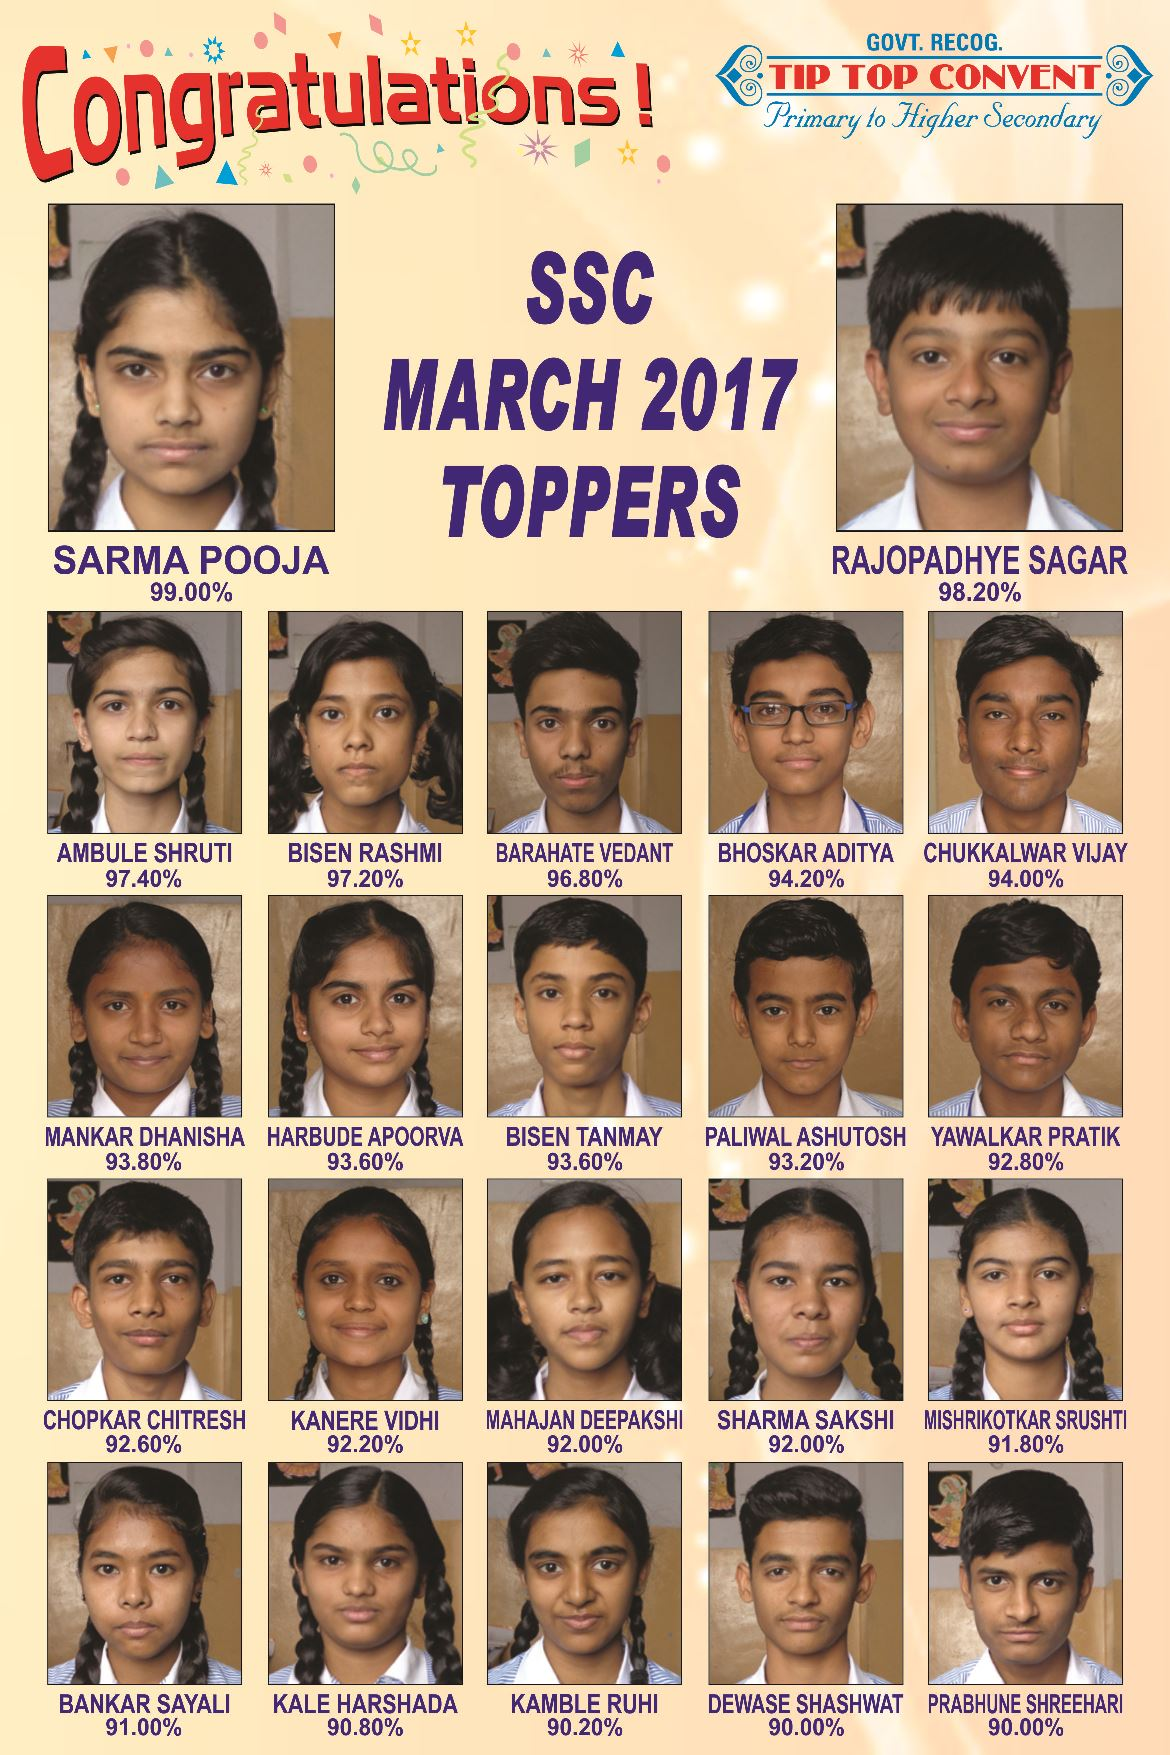 SSC Toppers 2017